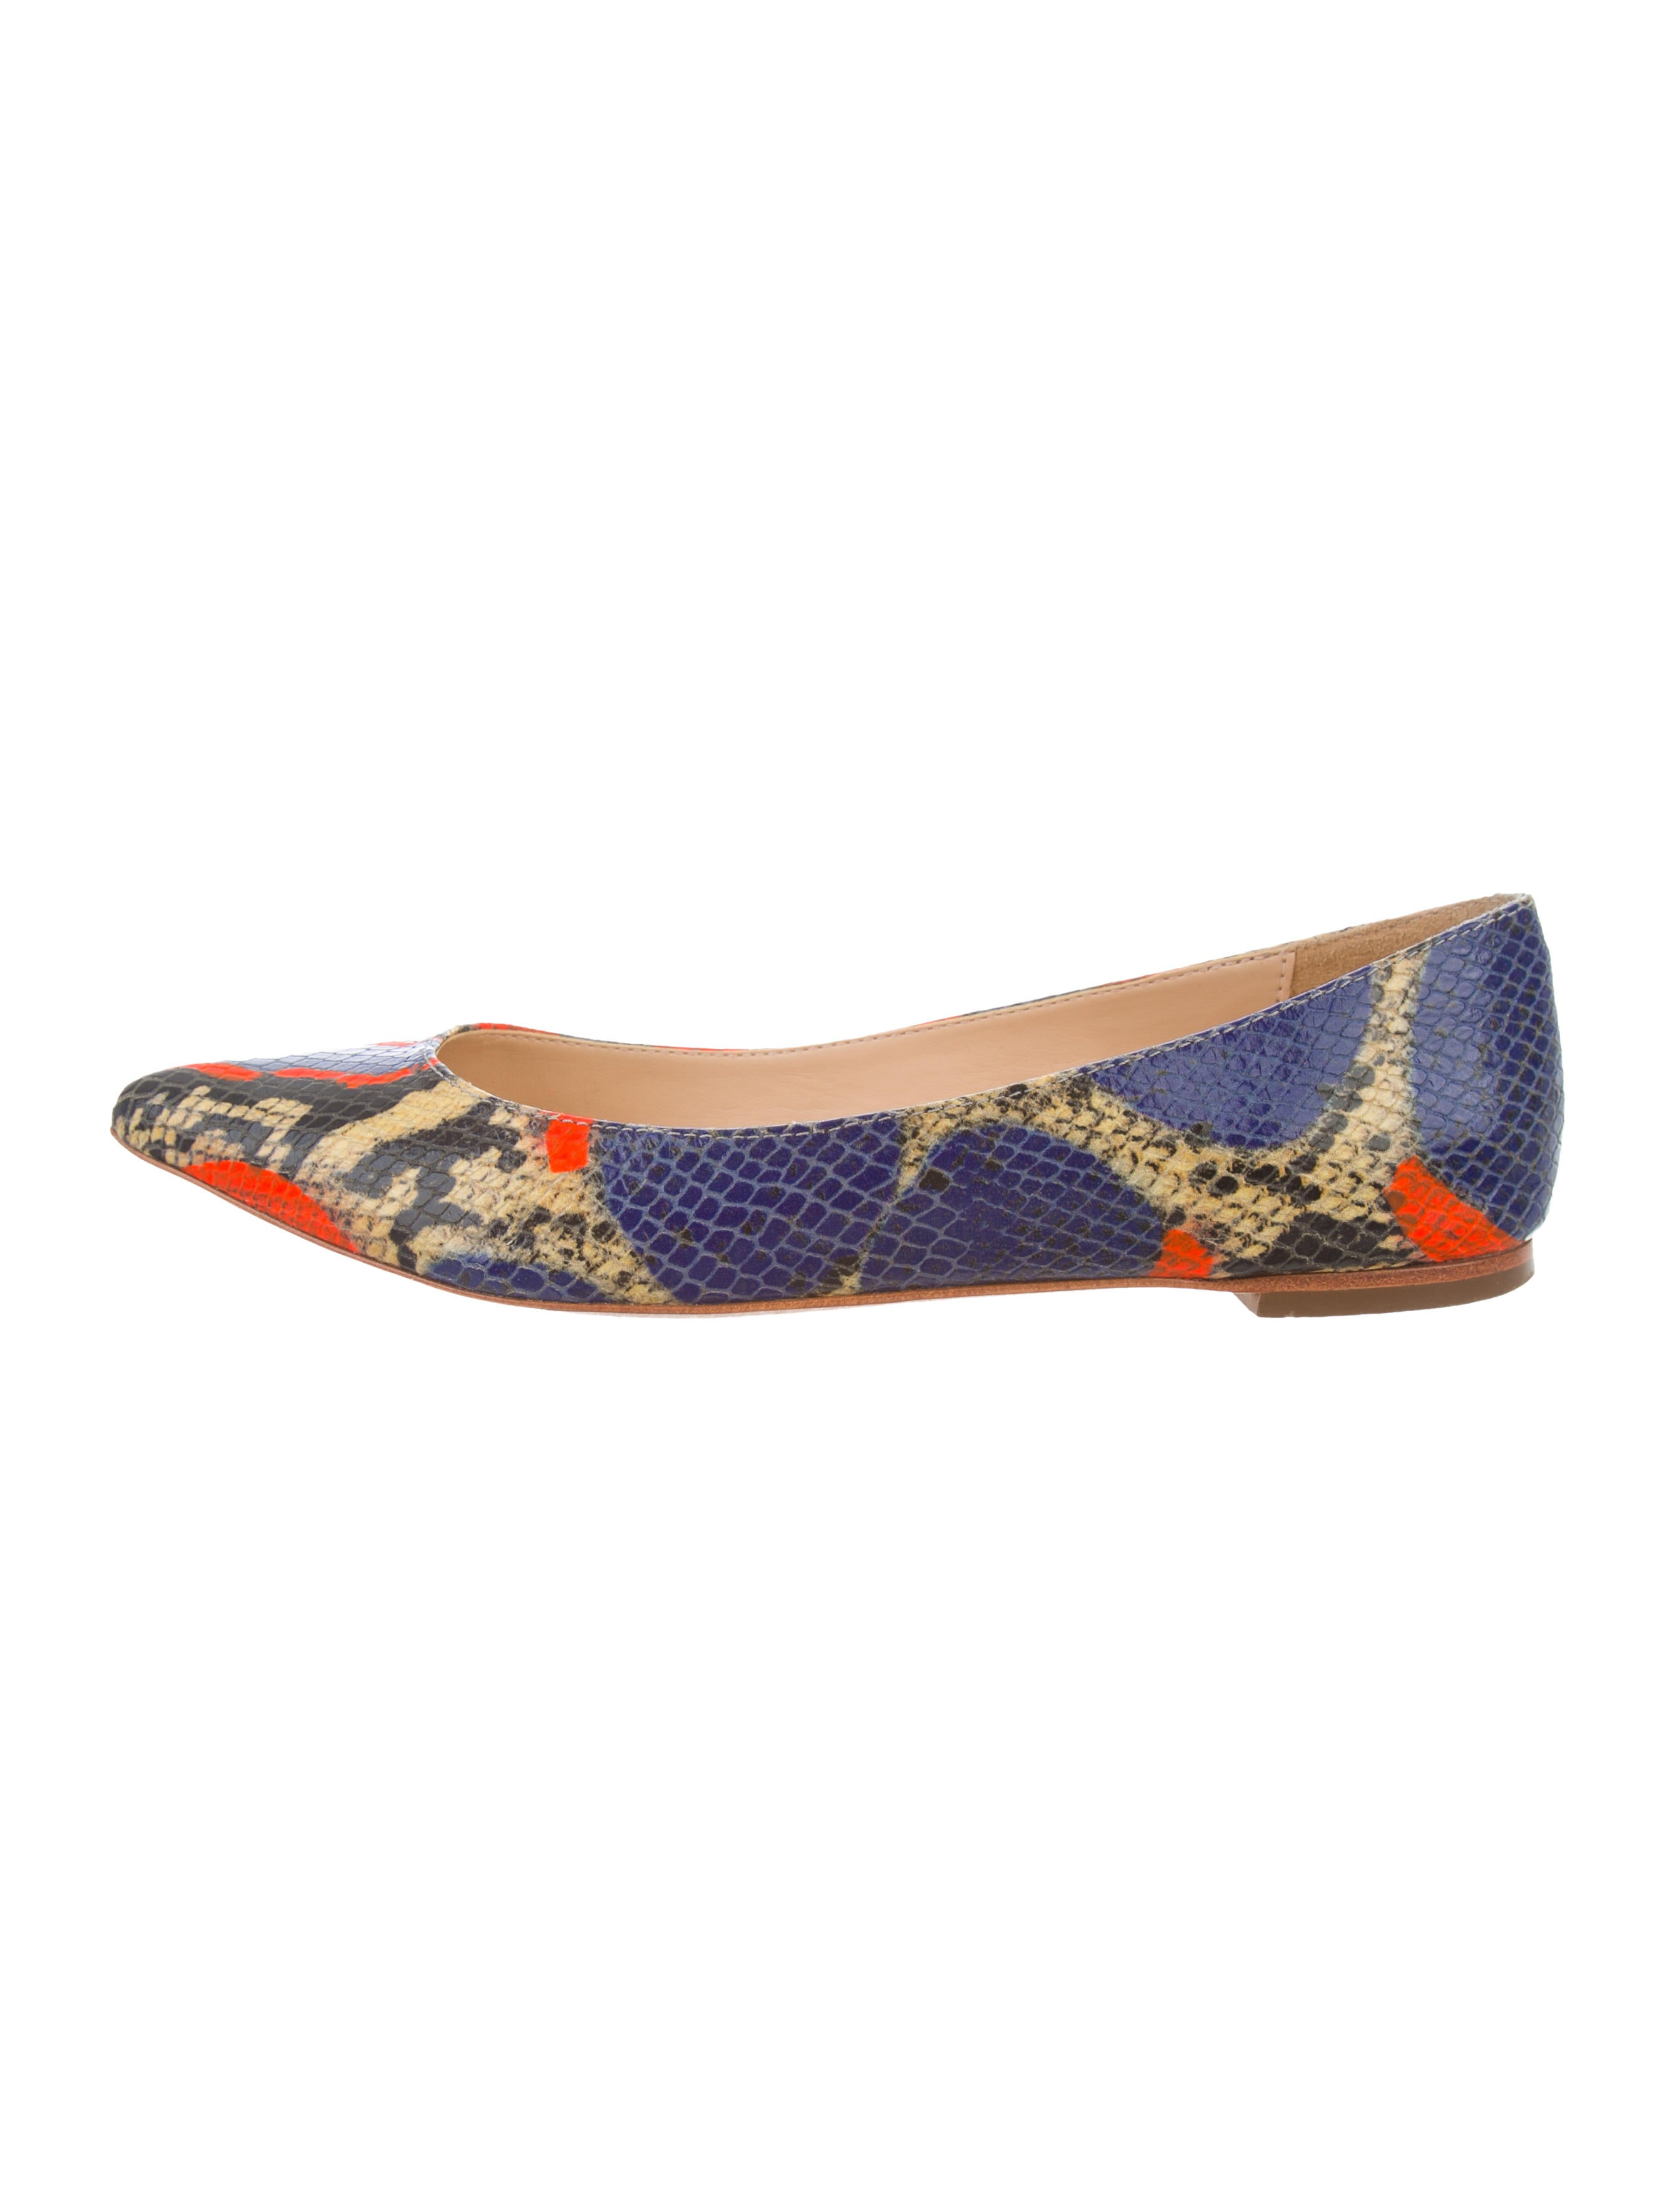 view cheap online Loeffler Randall Printed Embossed Leather Flats free shipping comfortable QxrwpL